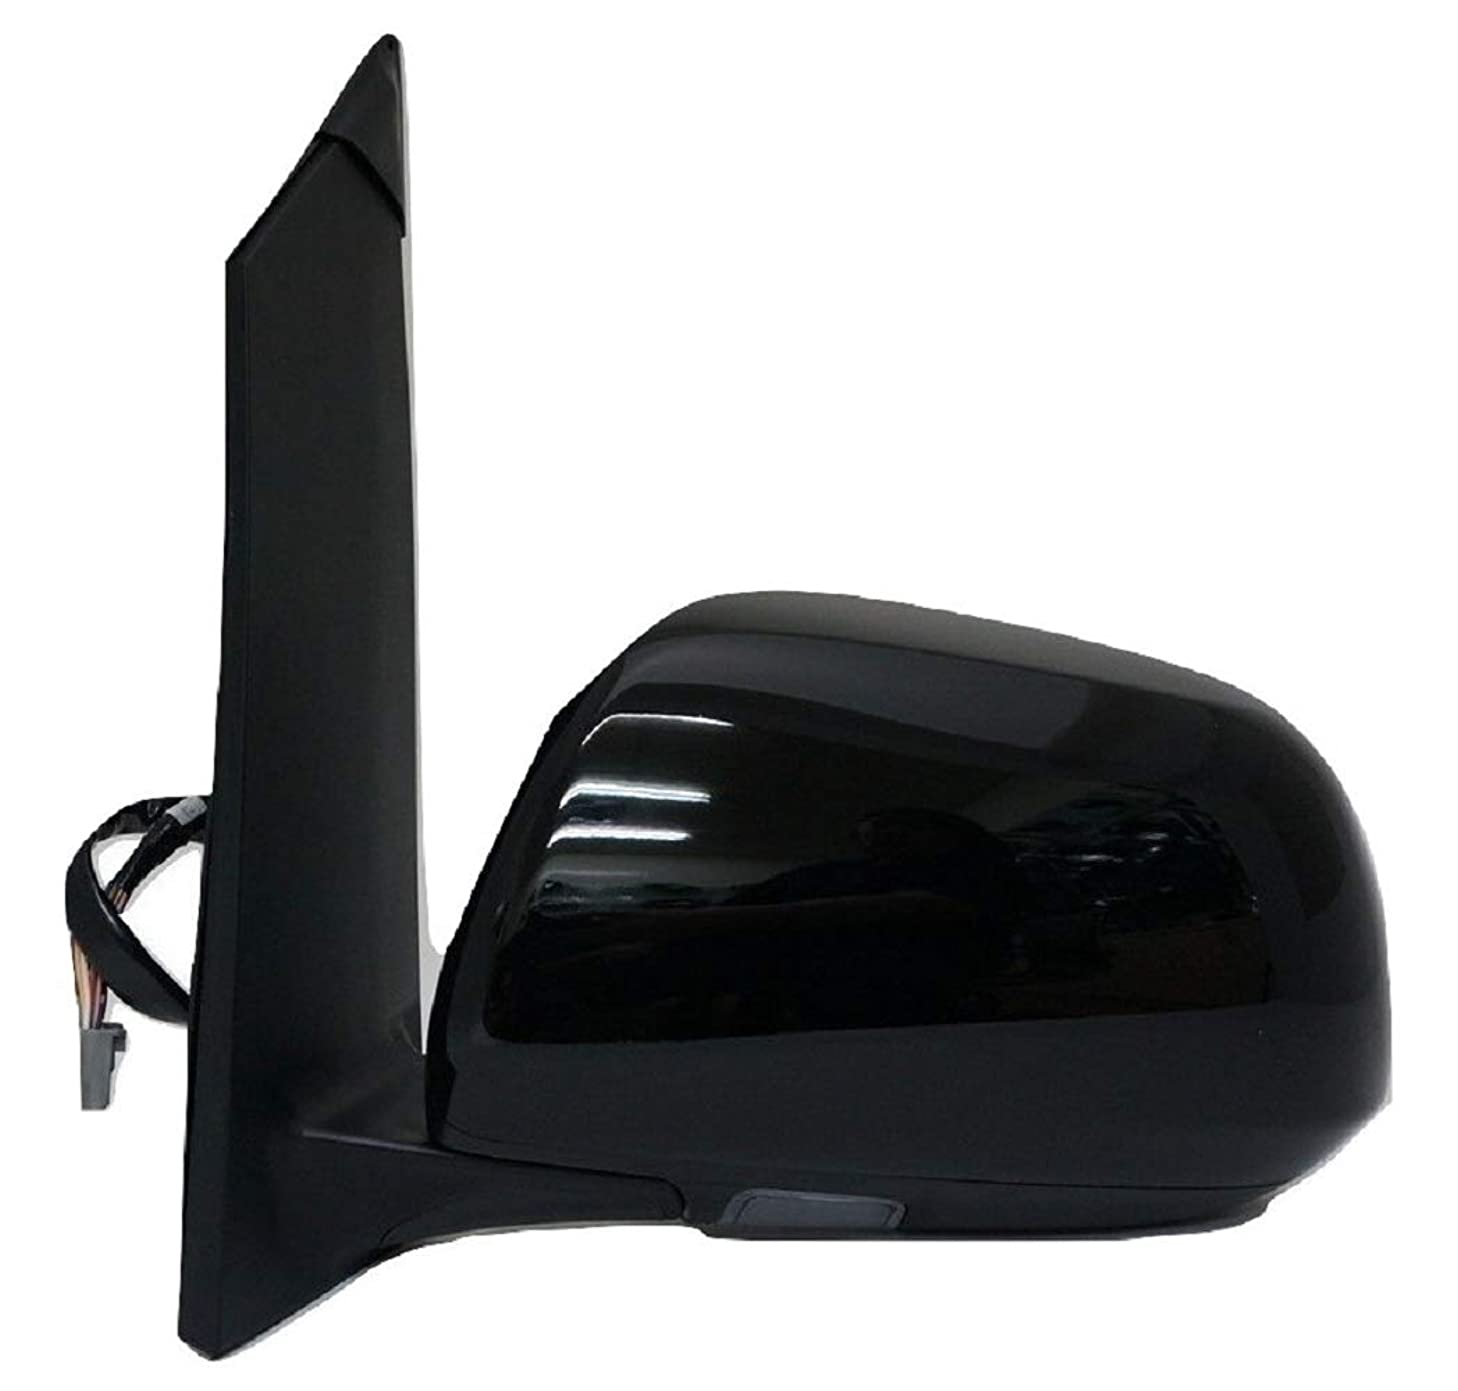 Zebra Side Exterior Mirror for 11-12 Sienna, Driver Side, W/Power, Heated, W/Memory, W/Puddle Lamp, Paint to Match Cover